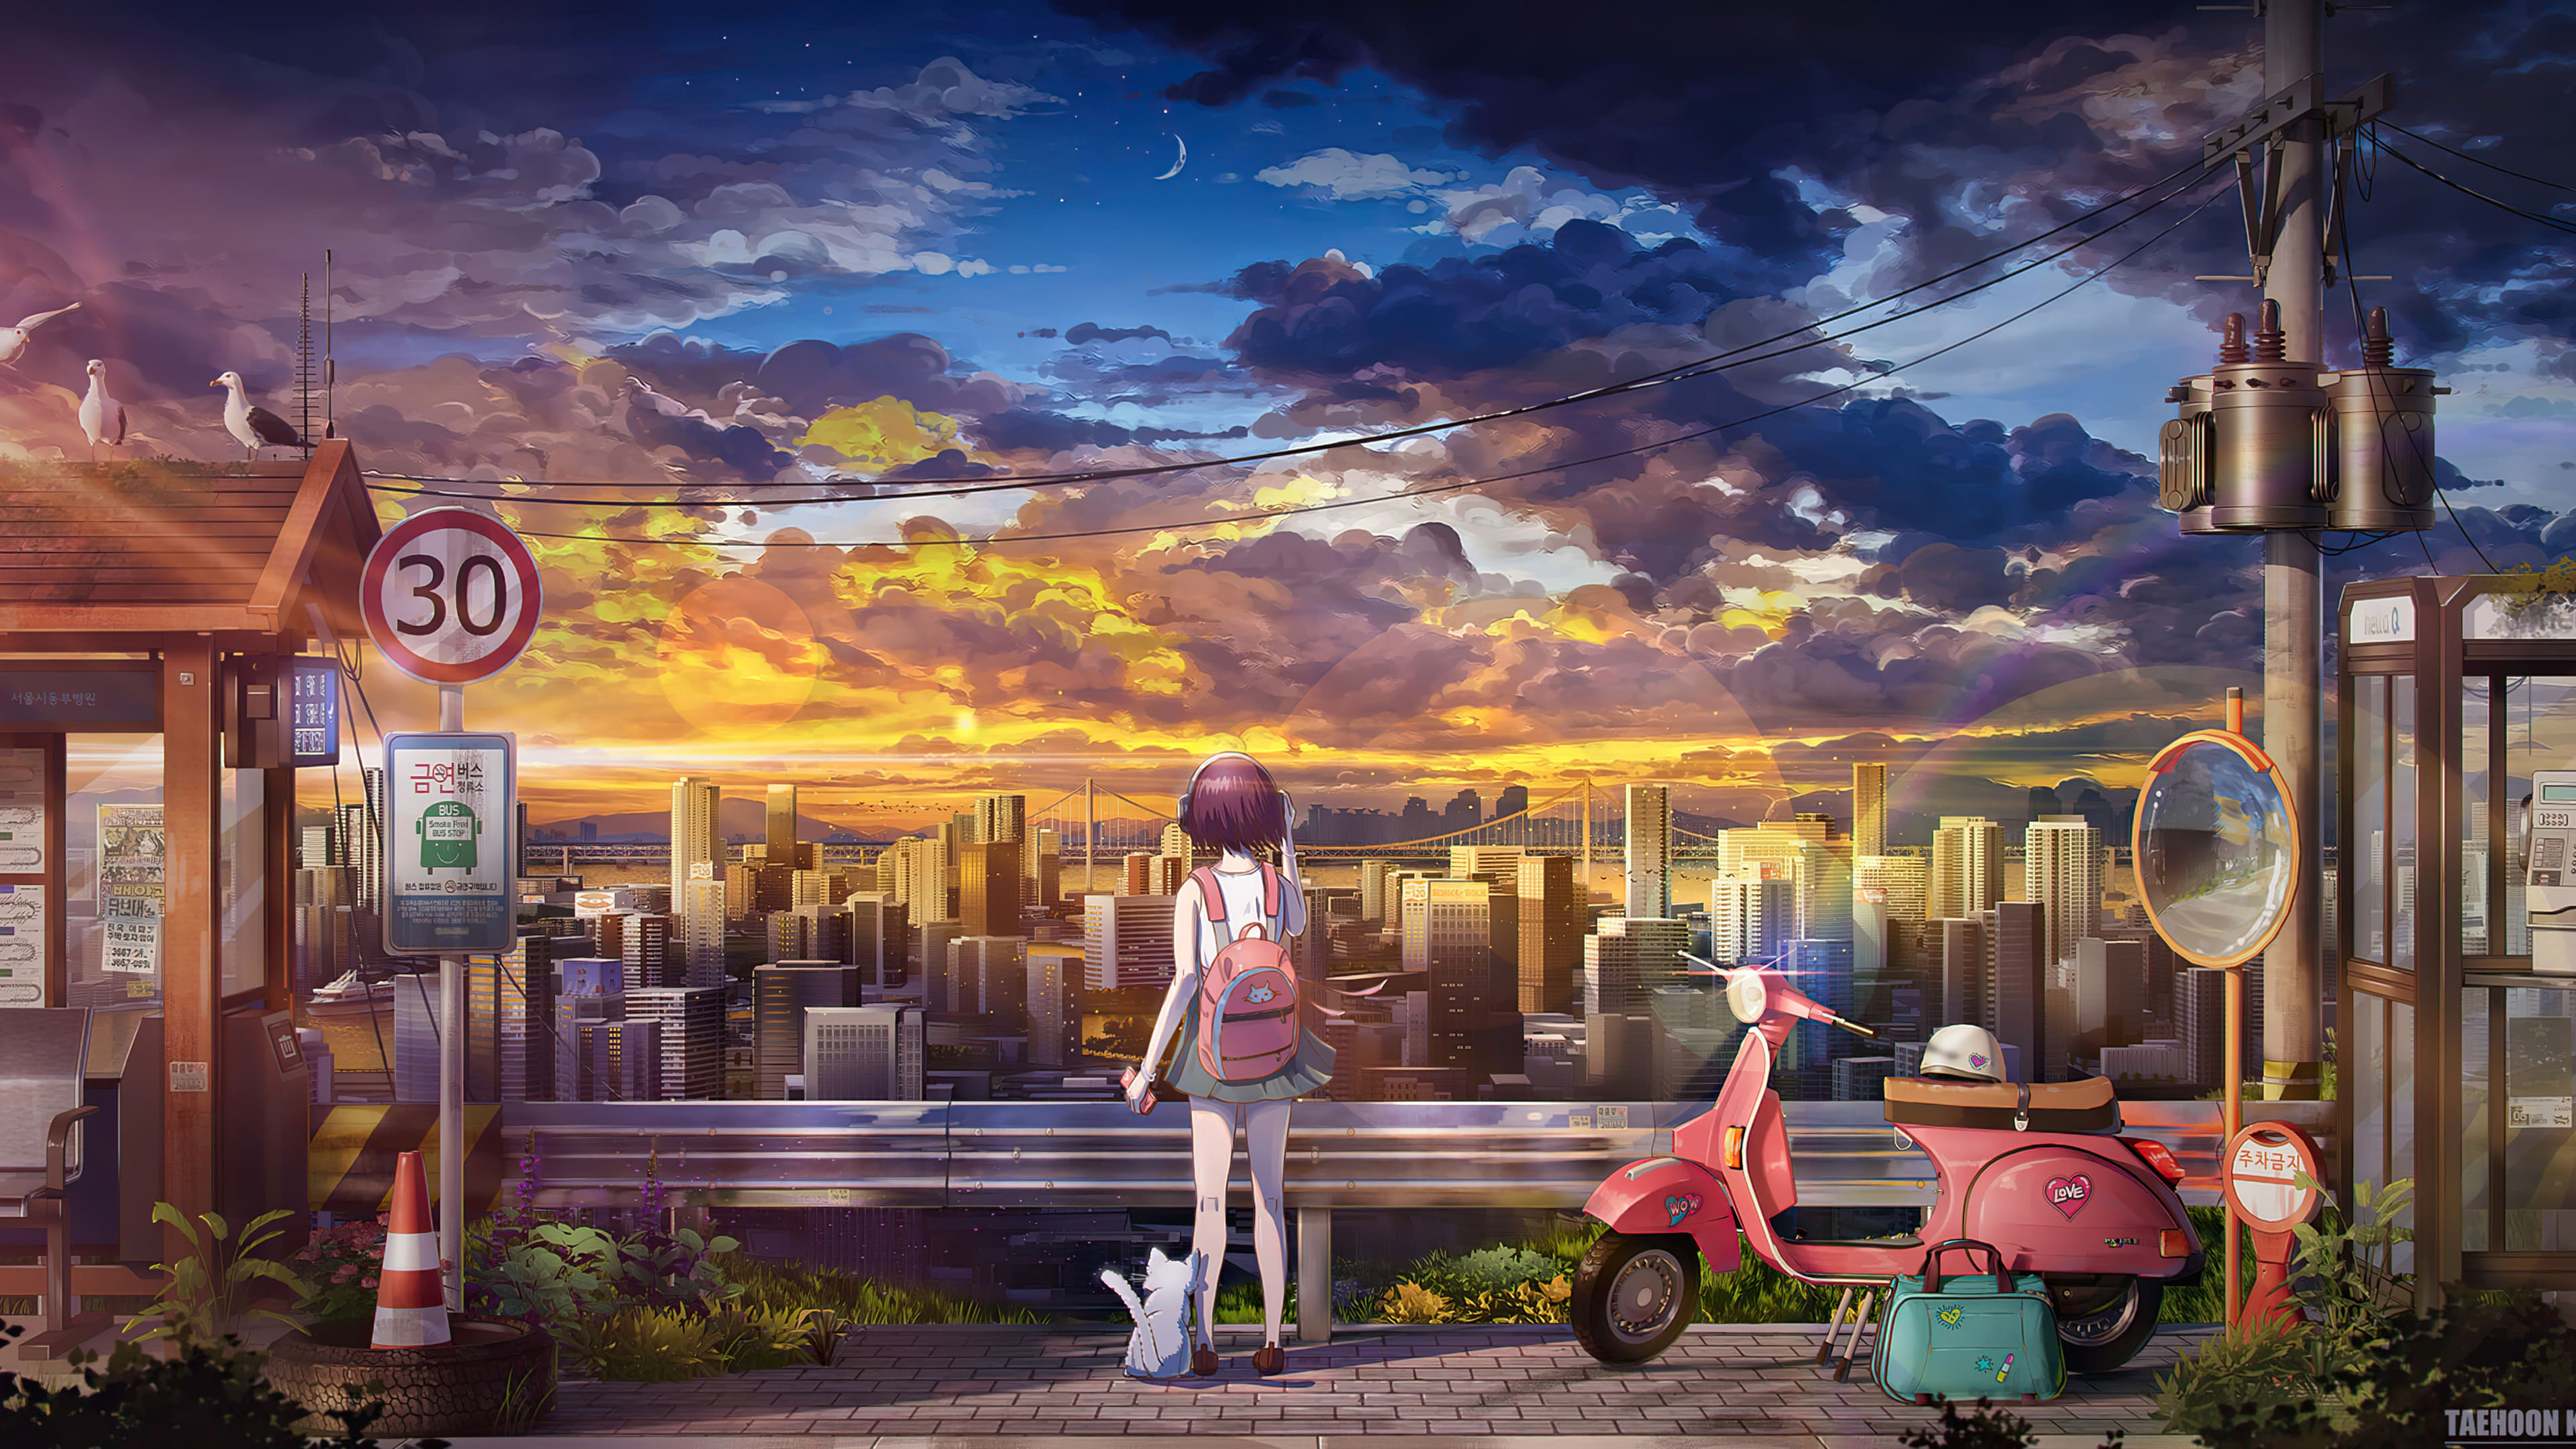 Anime Wallpaper For Pc Free Download 32 Anime Pc Wallpaper Free Download Sachi Wallpaper Free Anime Live Animated Wallpapers